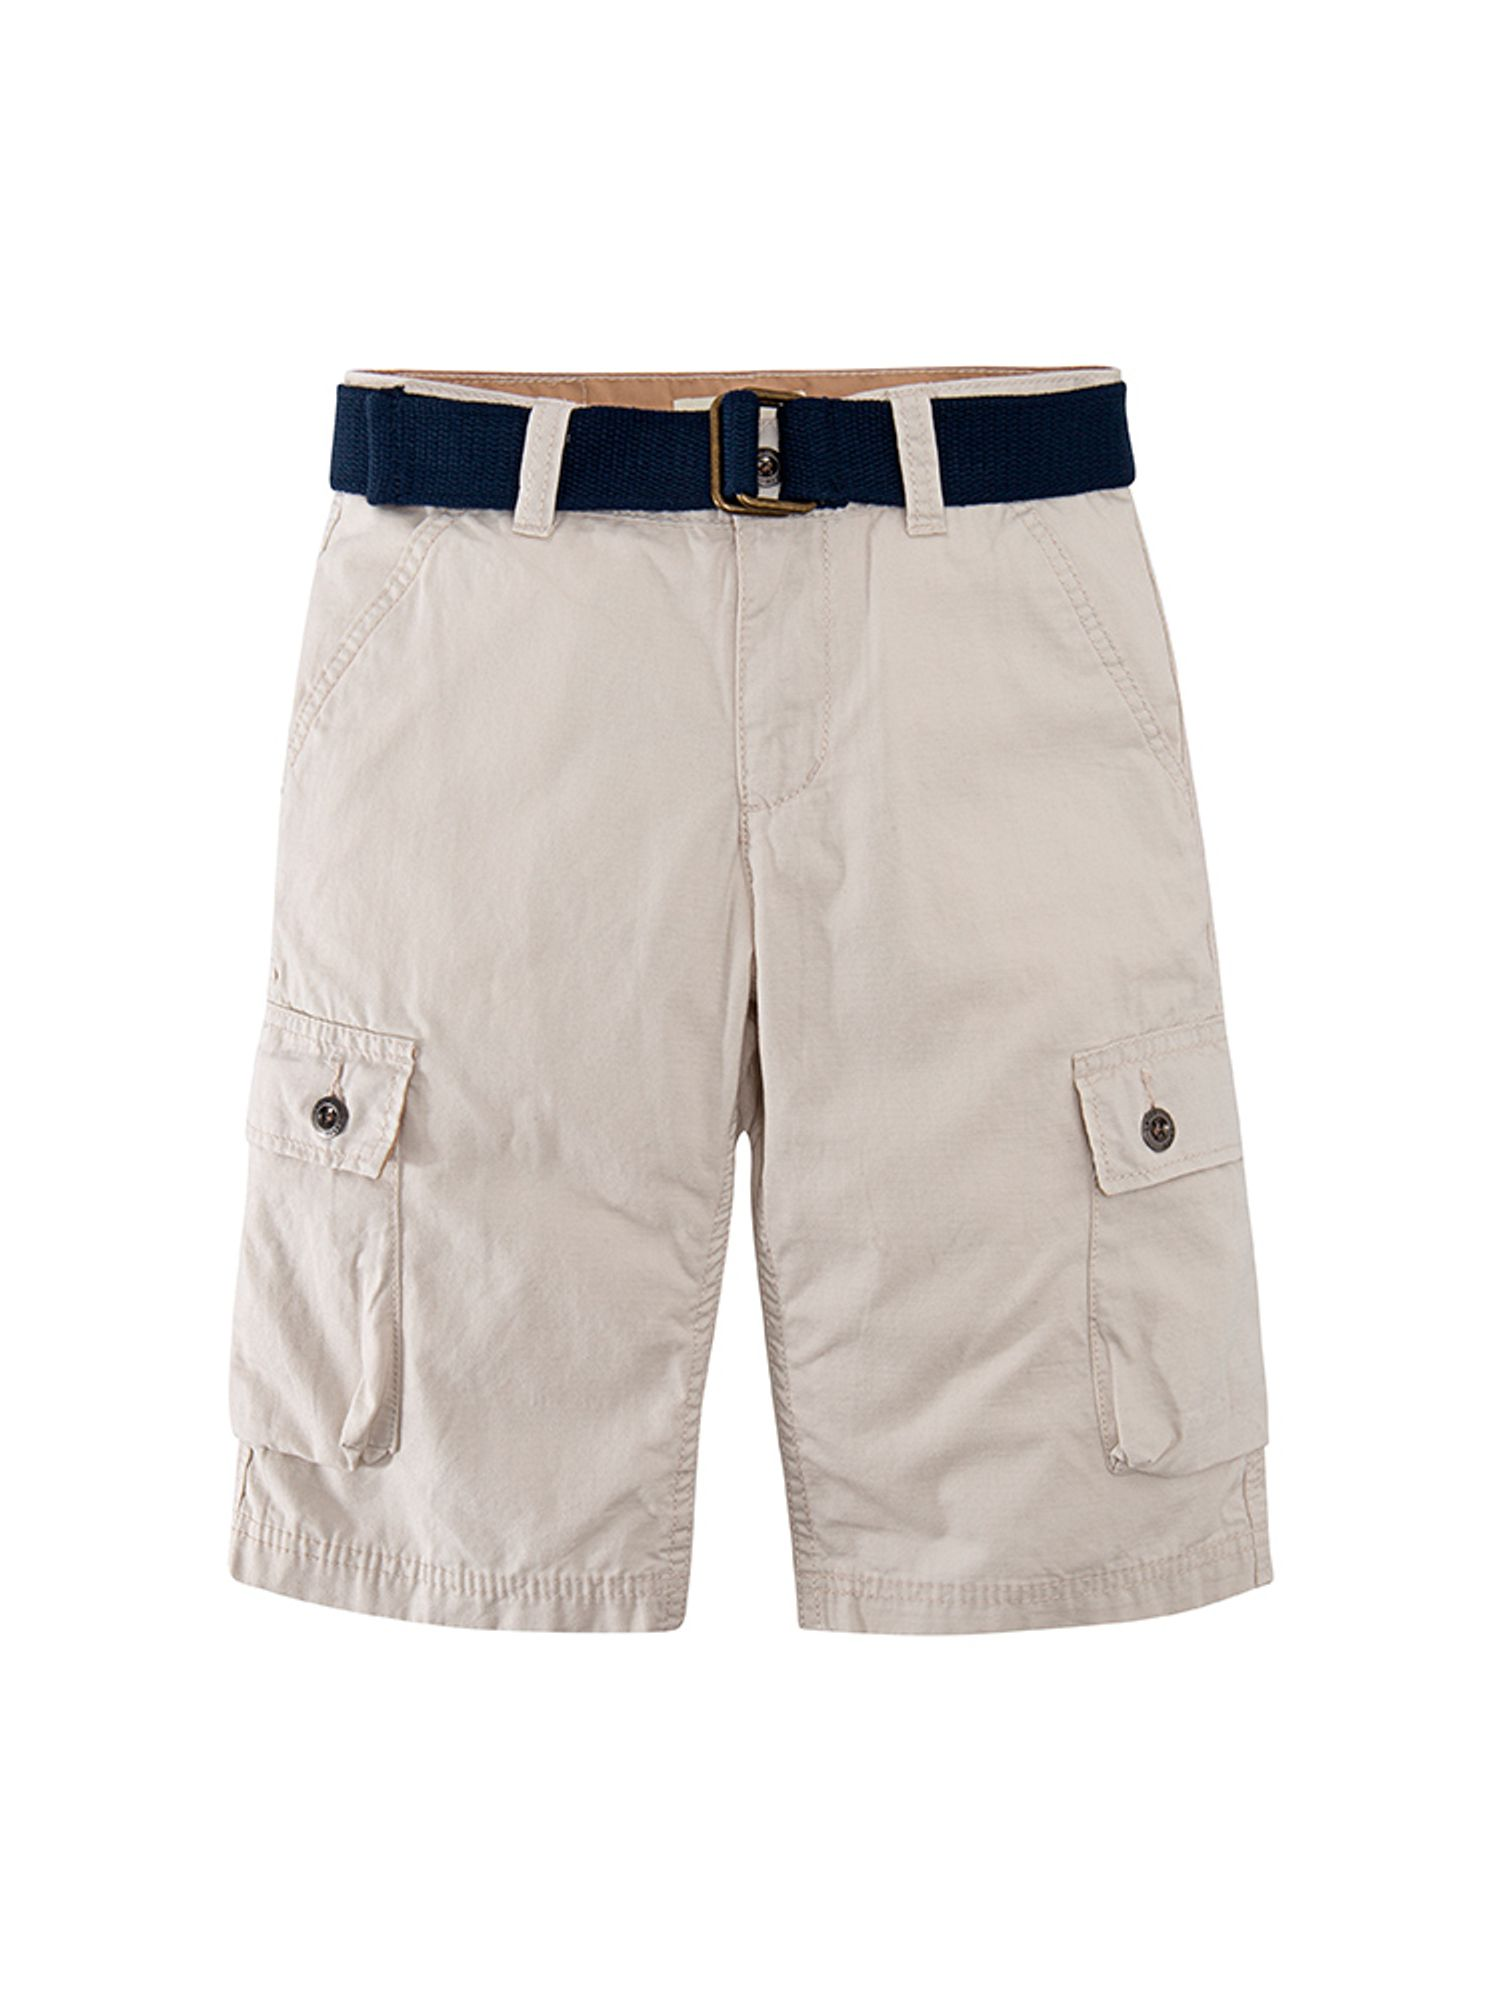 Short_Westwood_Cargo_Moonbeam_Beige_-8-16_años-_1